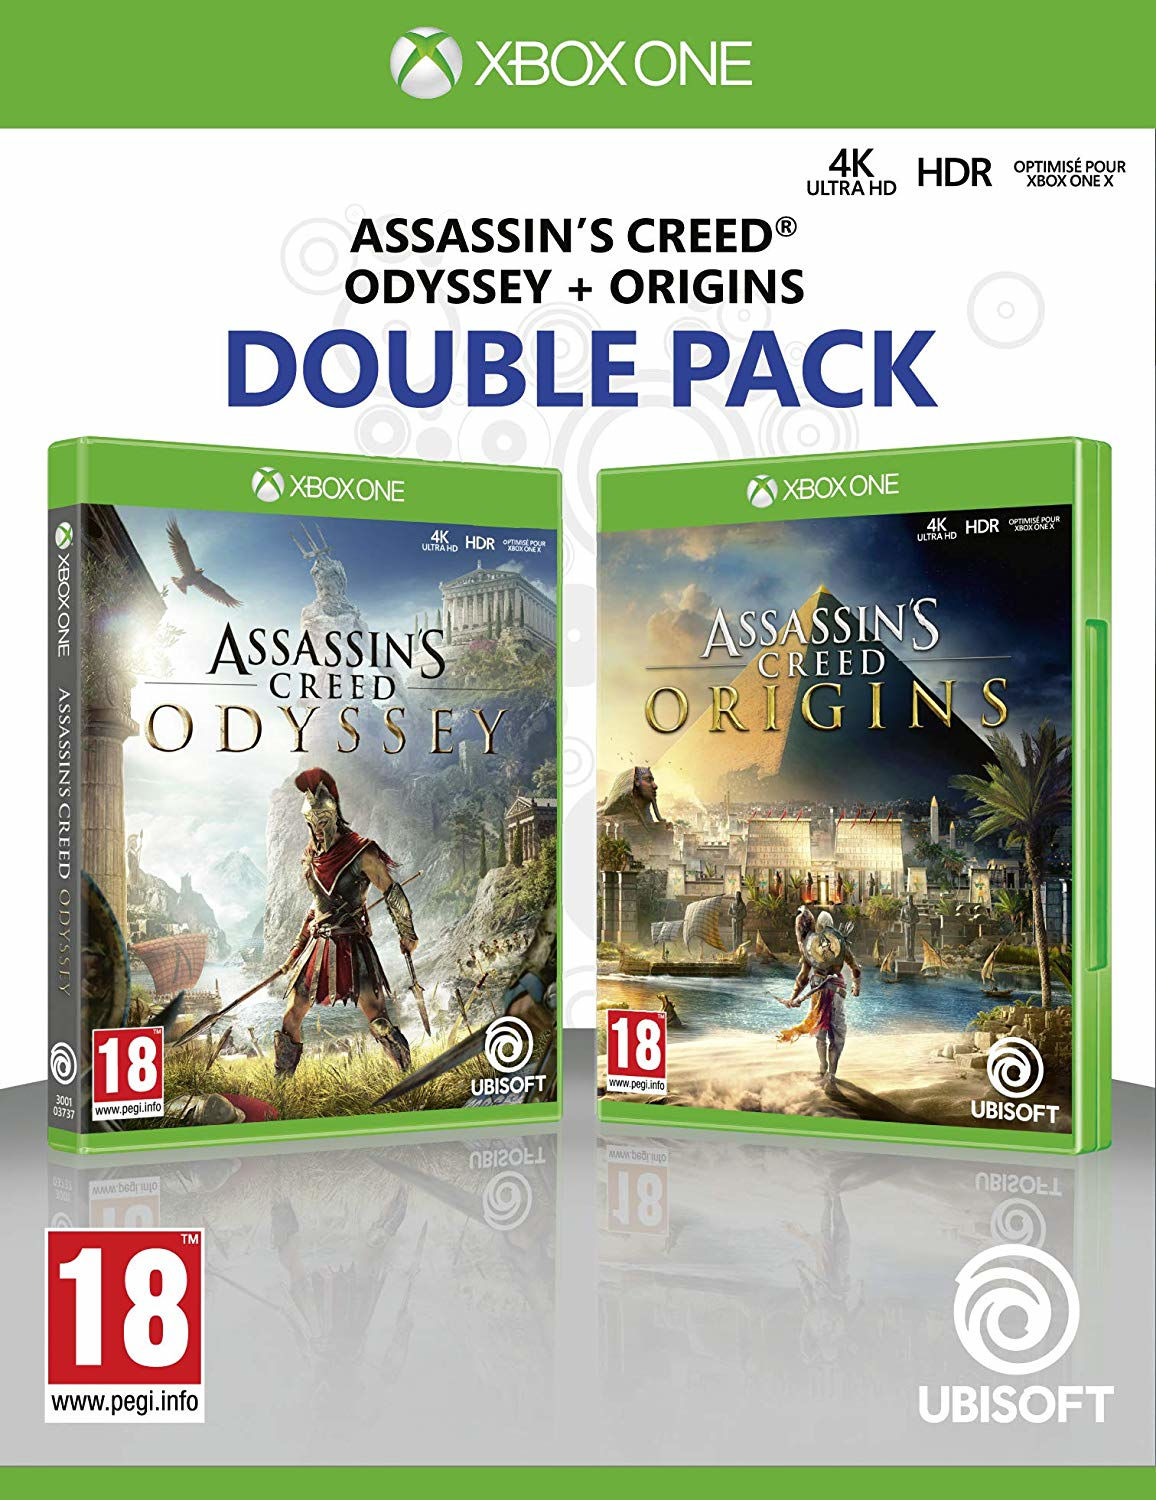 Ubisoft Assassin's Creed Odyssey + Origins